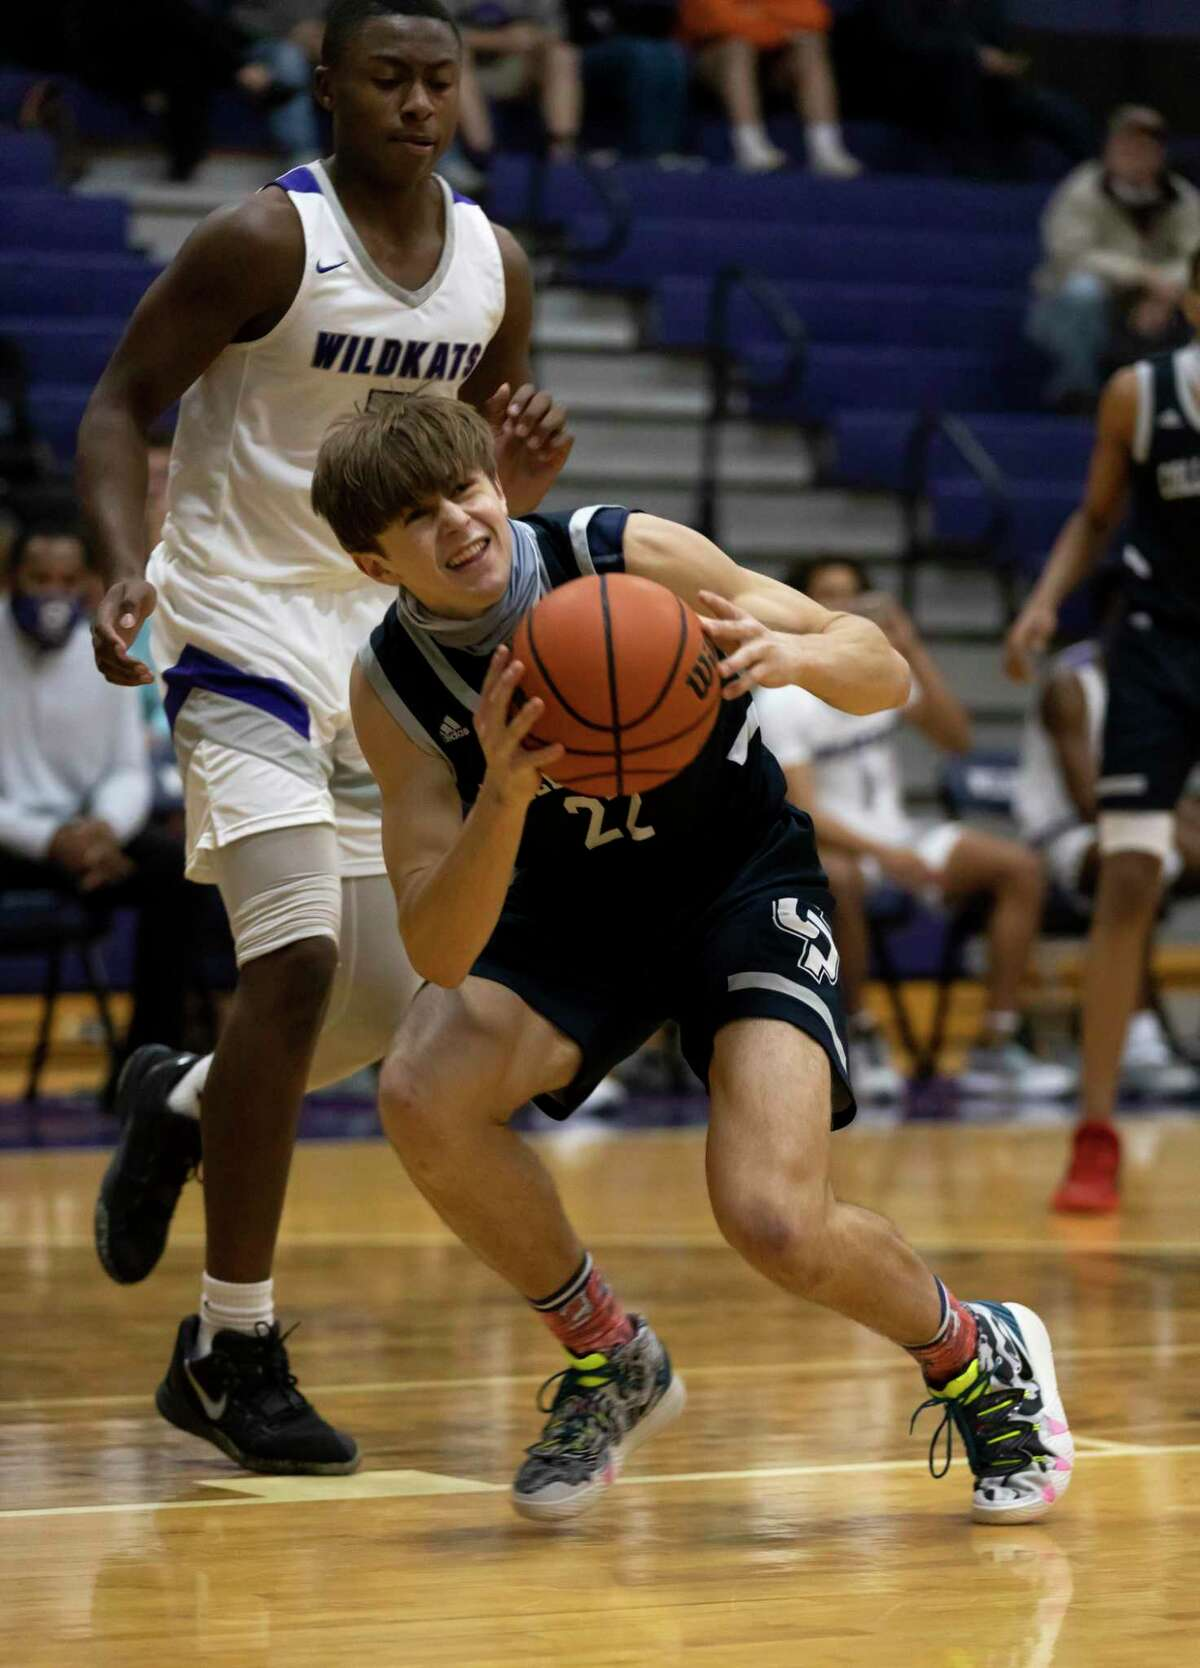 College Park guard Logan Maksimowicz (22) stops near the basket to shoot the ball while under pressure from Willis Ja'Kobe McCoy (15) during the first quarter of a District 13-6A boys basketball game at Willis High School, Tuesday, Dec. 22, 2020, in Willis.